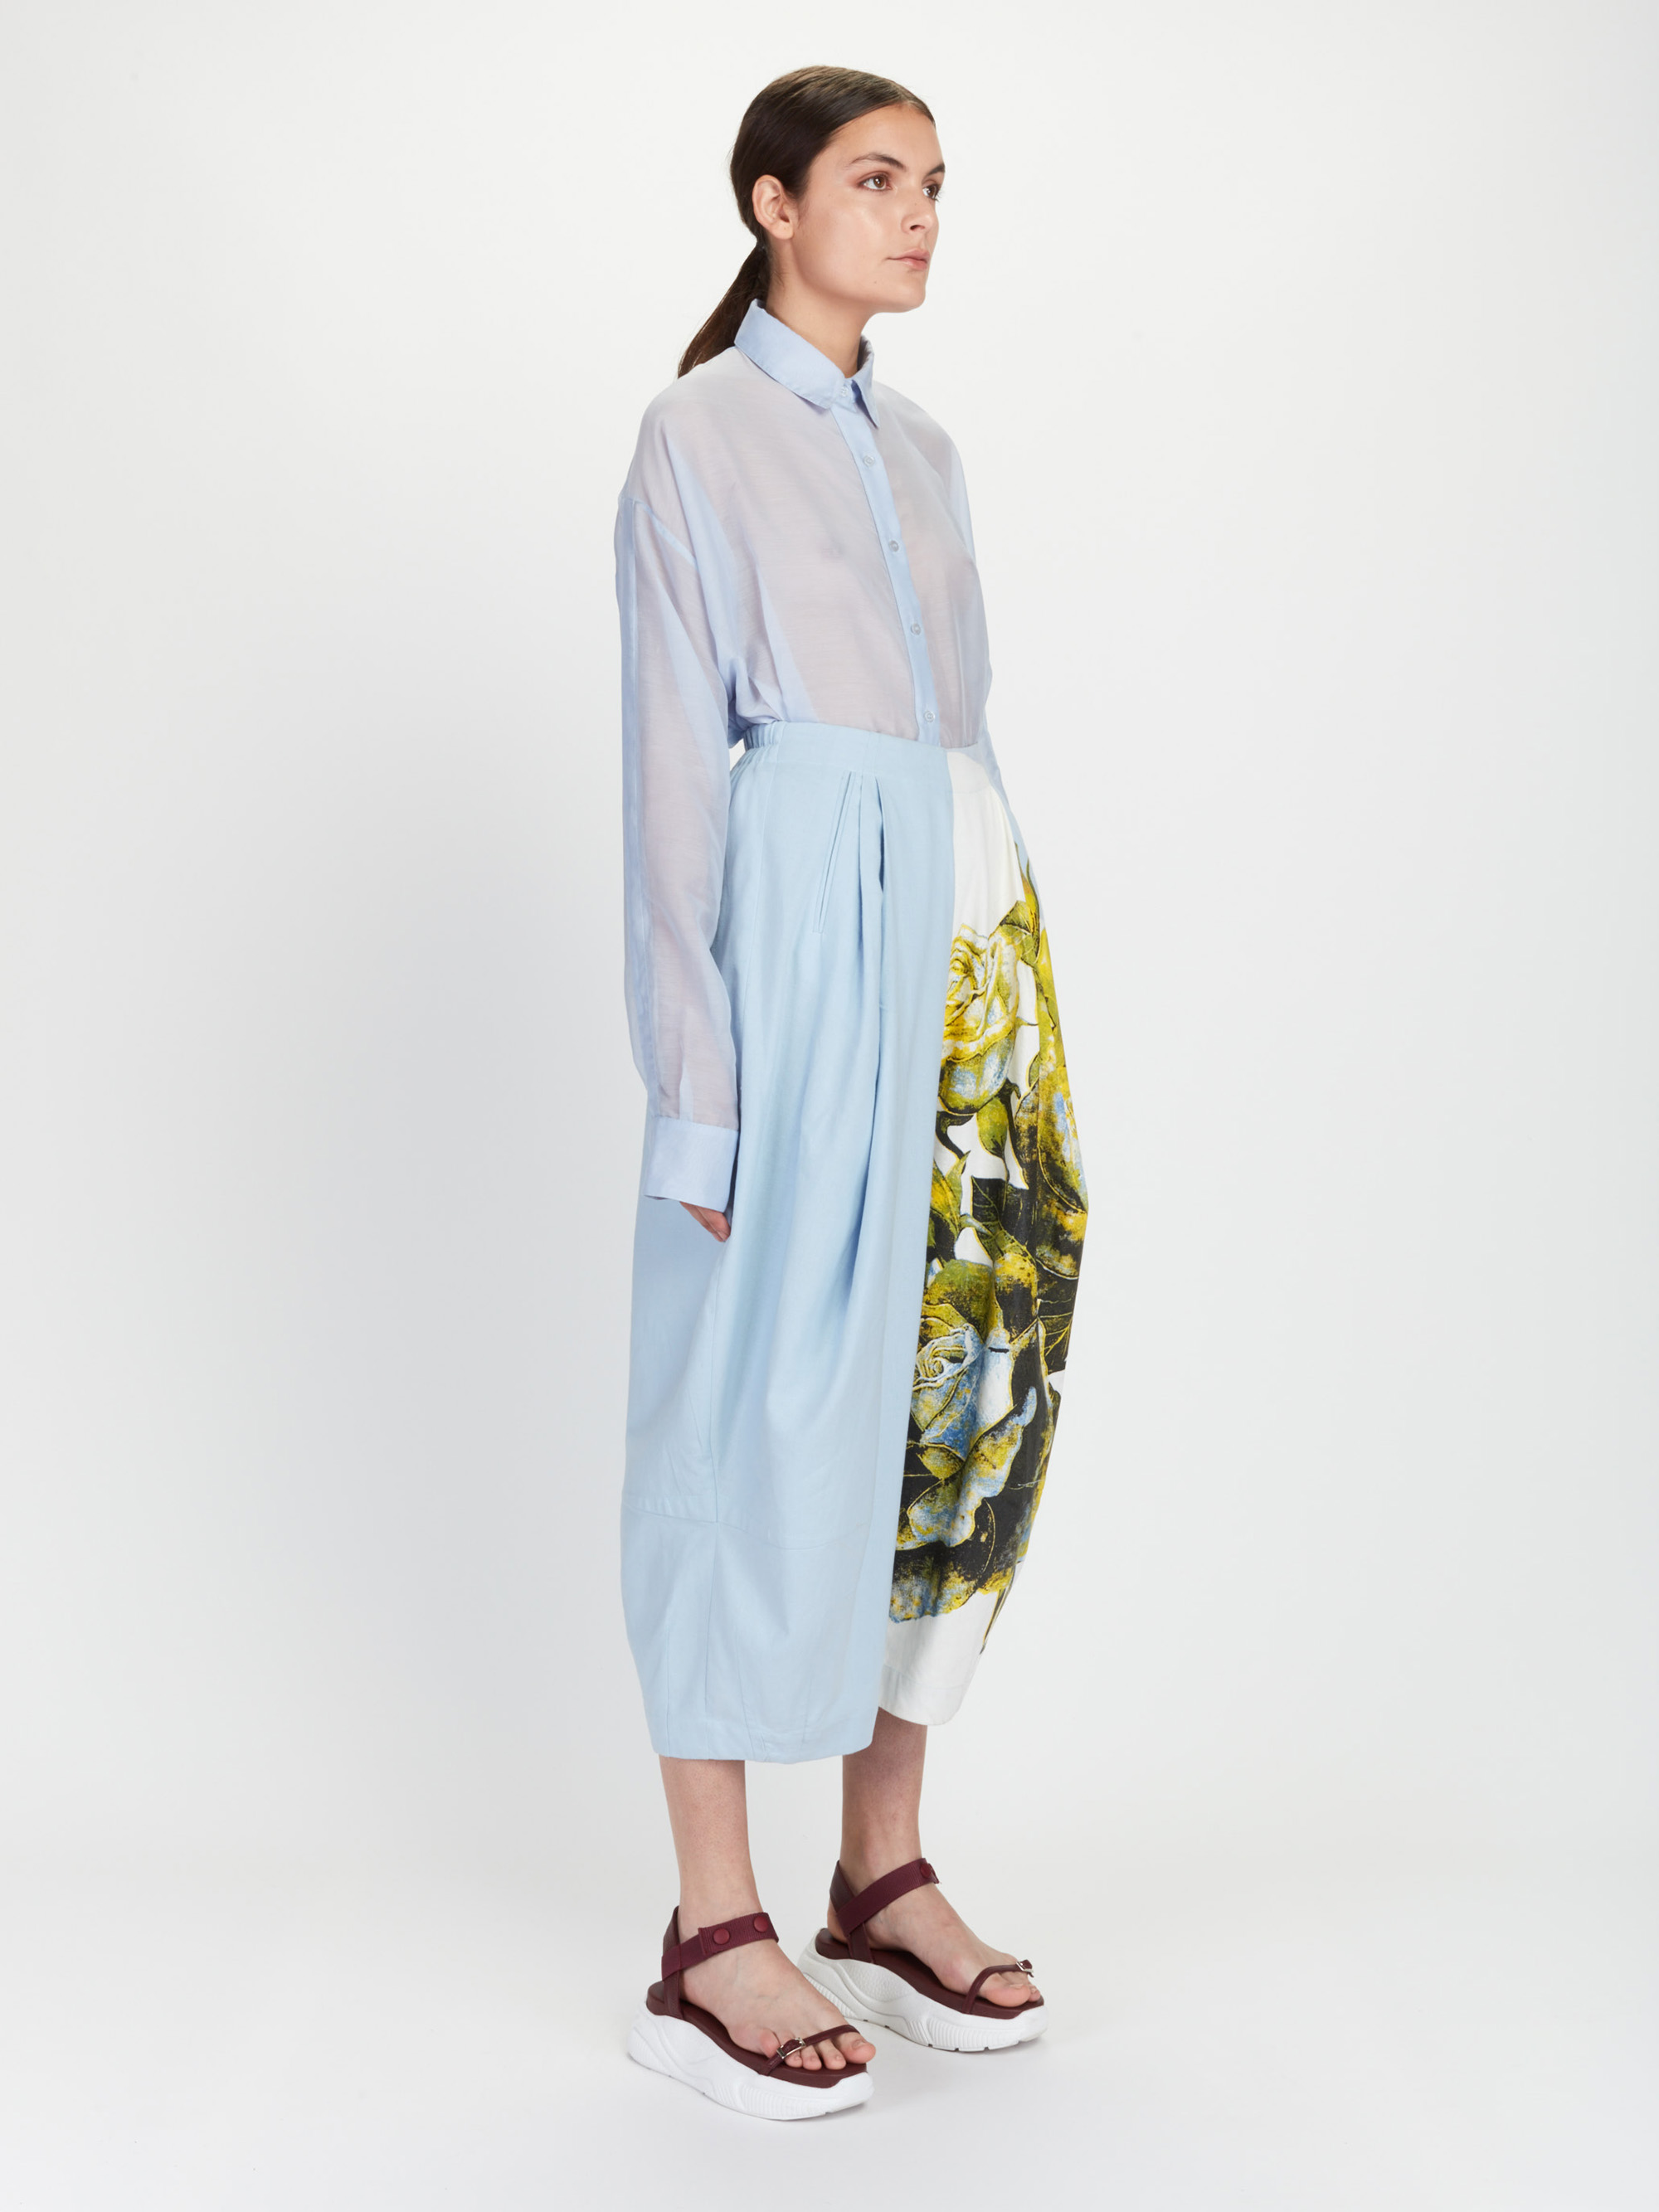 jt_zappa-printed-pant_29-26-2018__picture-1271